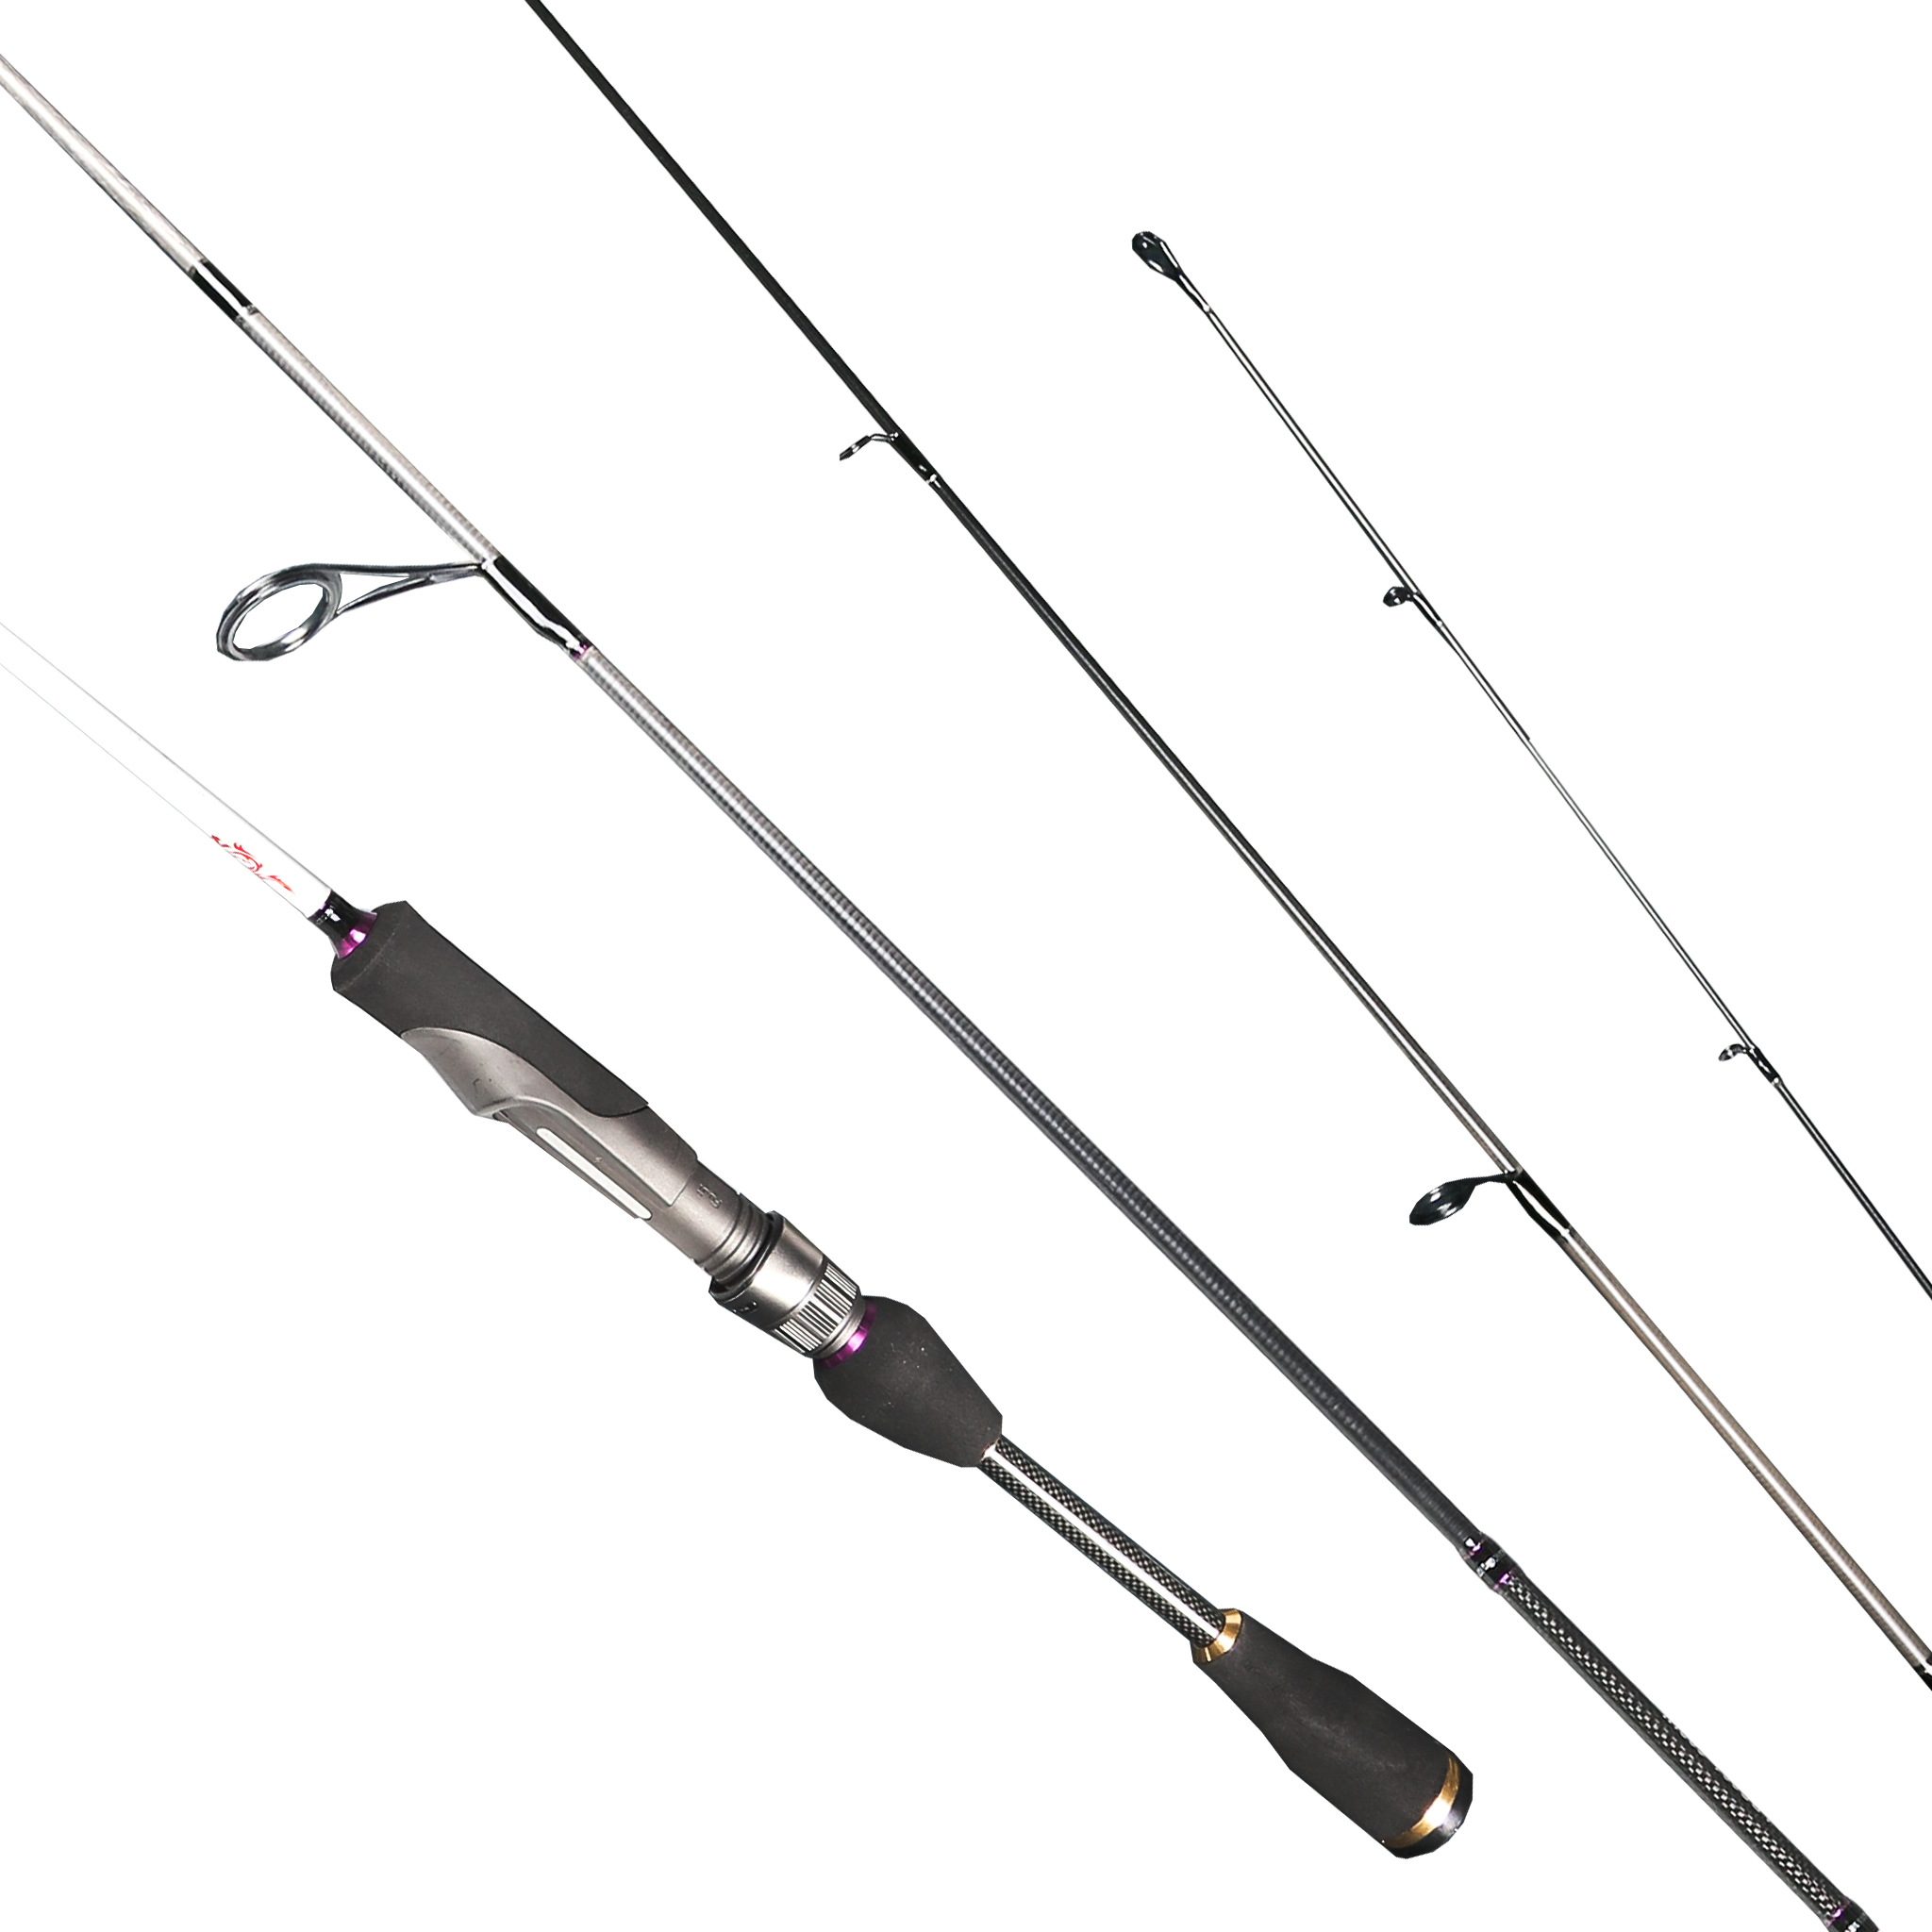 2 Tips 1.83 Spinning Rod with UL/L Baitcasting Rod 96% Carbon Fishing Rod With FUJI A Lure Fishing Pole pesca Fishing Tackle trulinoya 2 1m 7 0 soft carbon spinning fishing rod with two tips m mh power fishing tackle